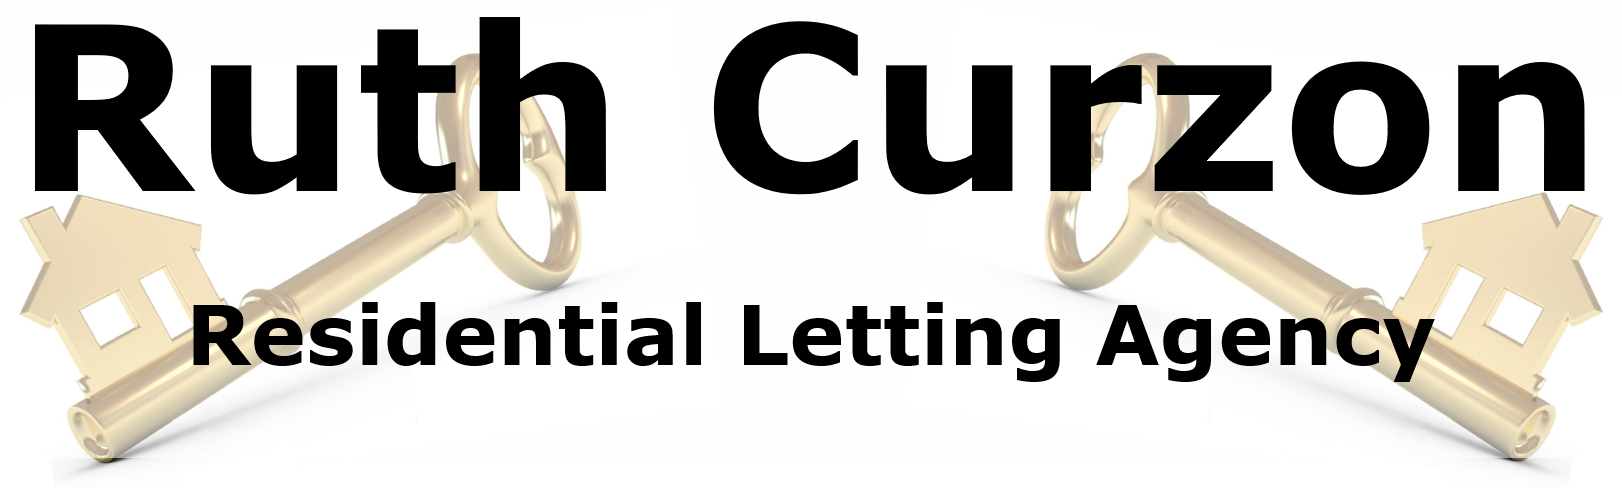 Ruth Curzon Residential Letting Agency